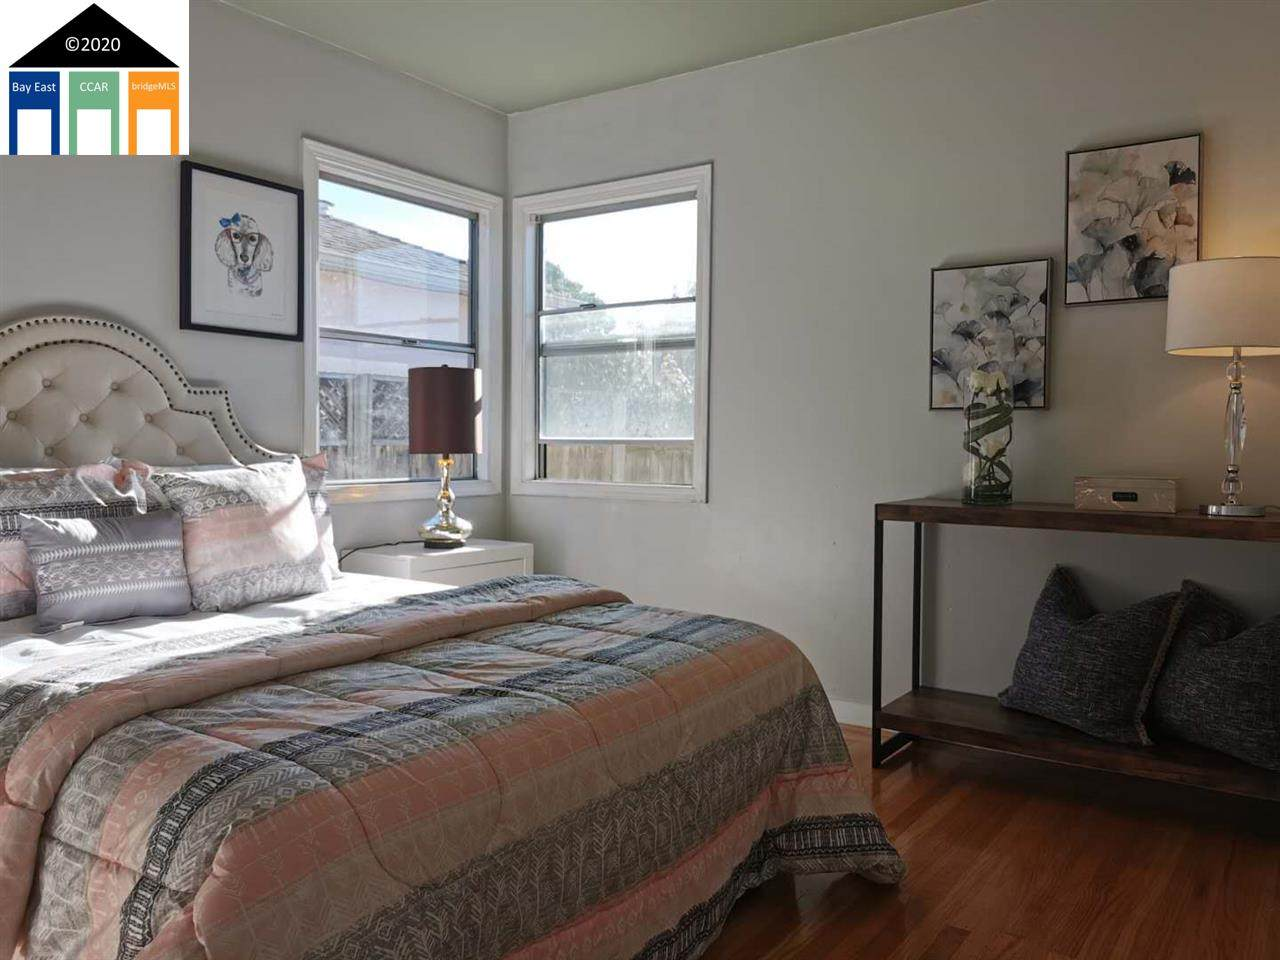 2045 Pacific Ave - Photo 1